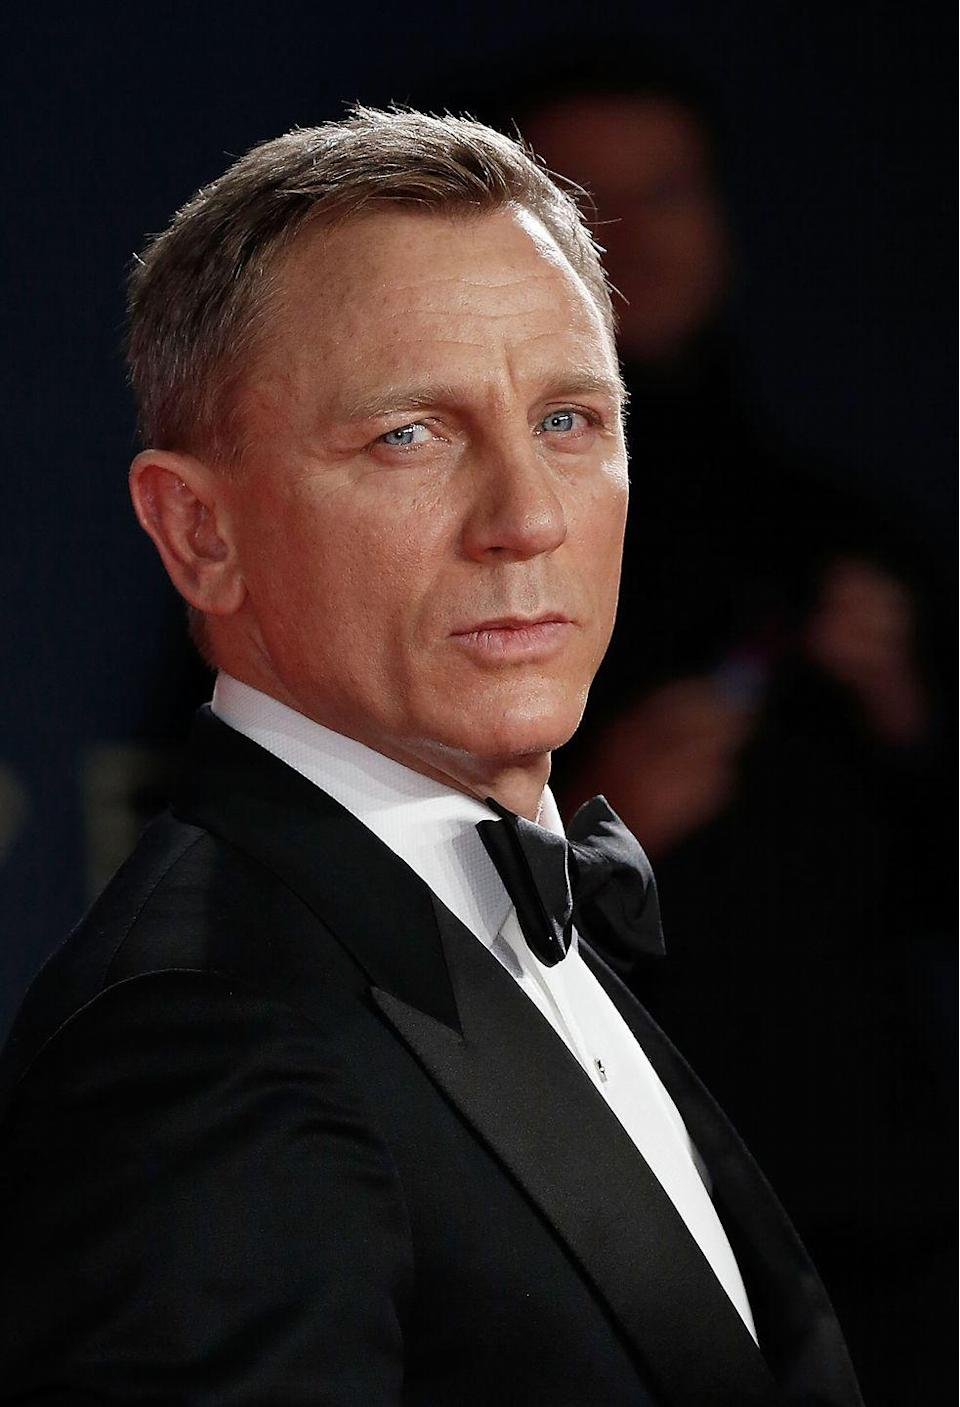 "<p>Craig is no doubt tired of the Bond series. When asked if he could imagine doing another Bond movie in 2015, Craig told <em><a href=""https://www.timeout.com/london/film/daniel-craig-interview-my-advice-to-the-next-james-bond-dont-be-shit"" rel=""nofollow noopener"" target=""_blank"" data-ylk=""slk:Time Out"" class=""link rapid-noclick-resp"">Time Out</a></em>, ""Now? I'd rather break this glass and slash my wrists. No, not at the moment. Not at all. That's fine. I'm over it at the moment. We're done. All I want to do is move on.""</p>"